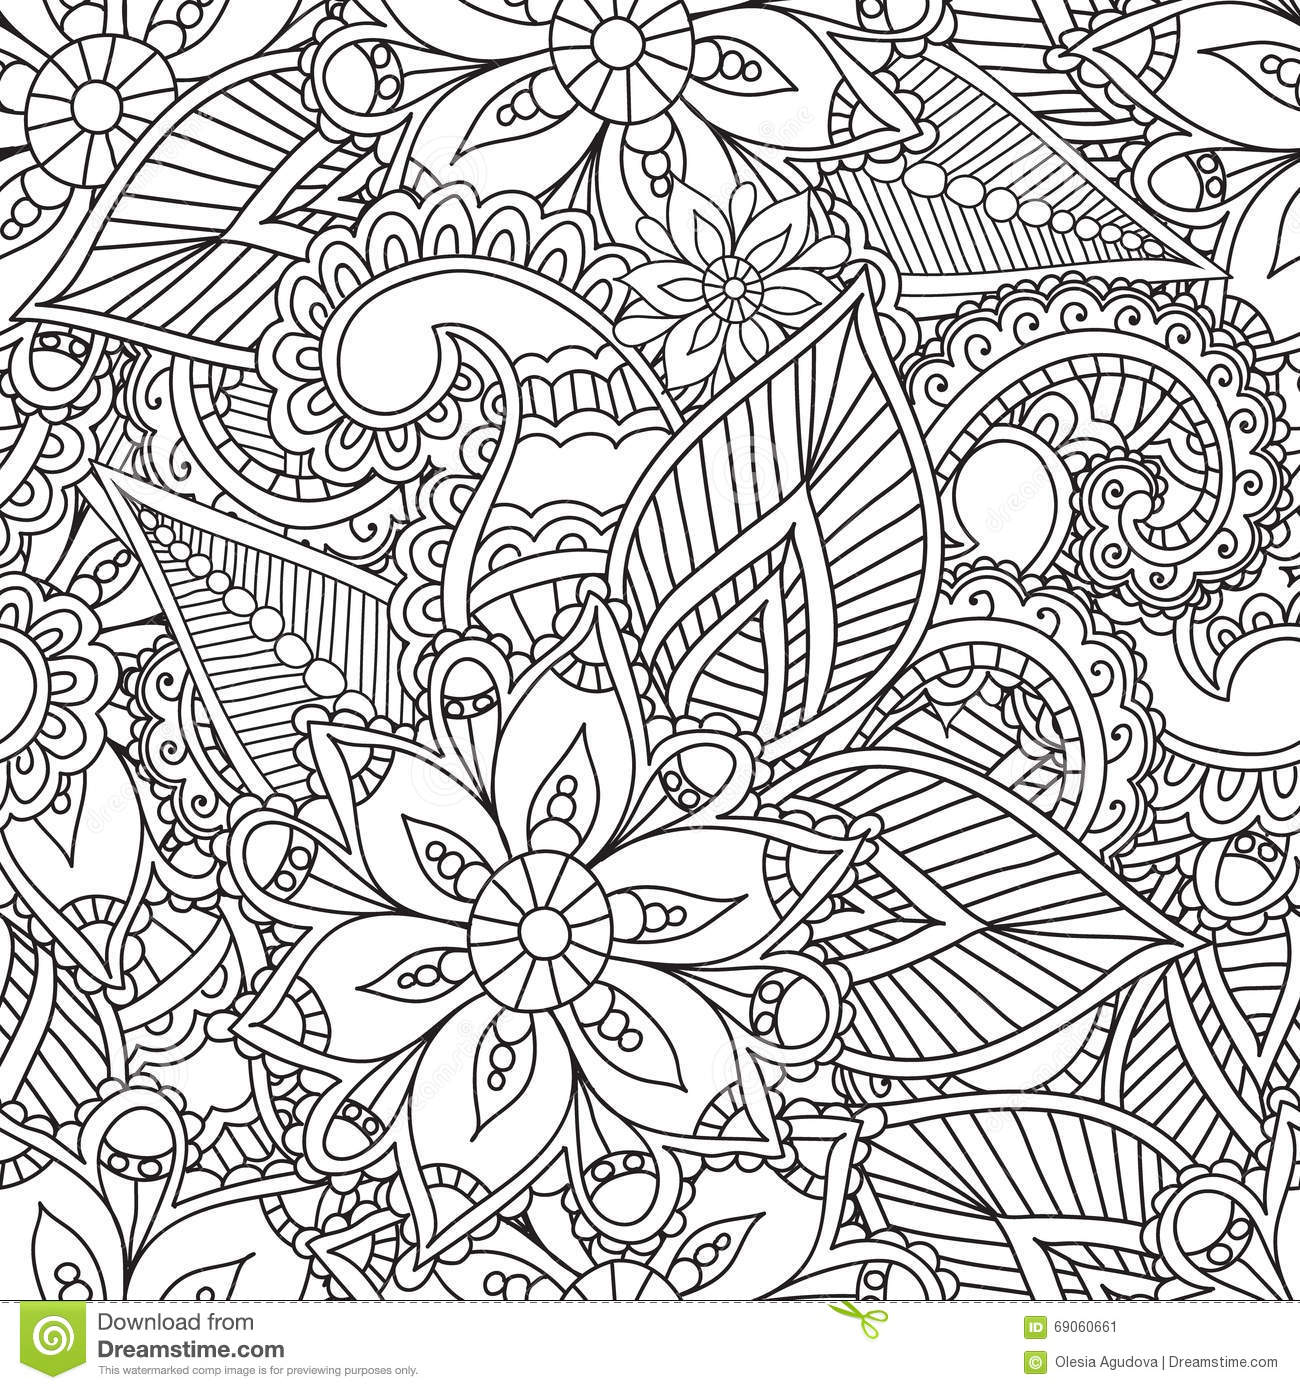 Hd Wallpaper Texture Fall Harvest Coloring Pages For Adults Seamles Henna Mehndi Doodles